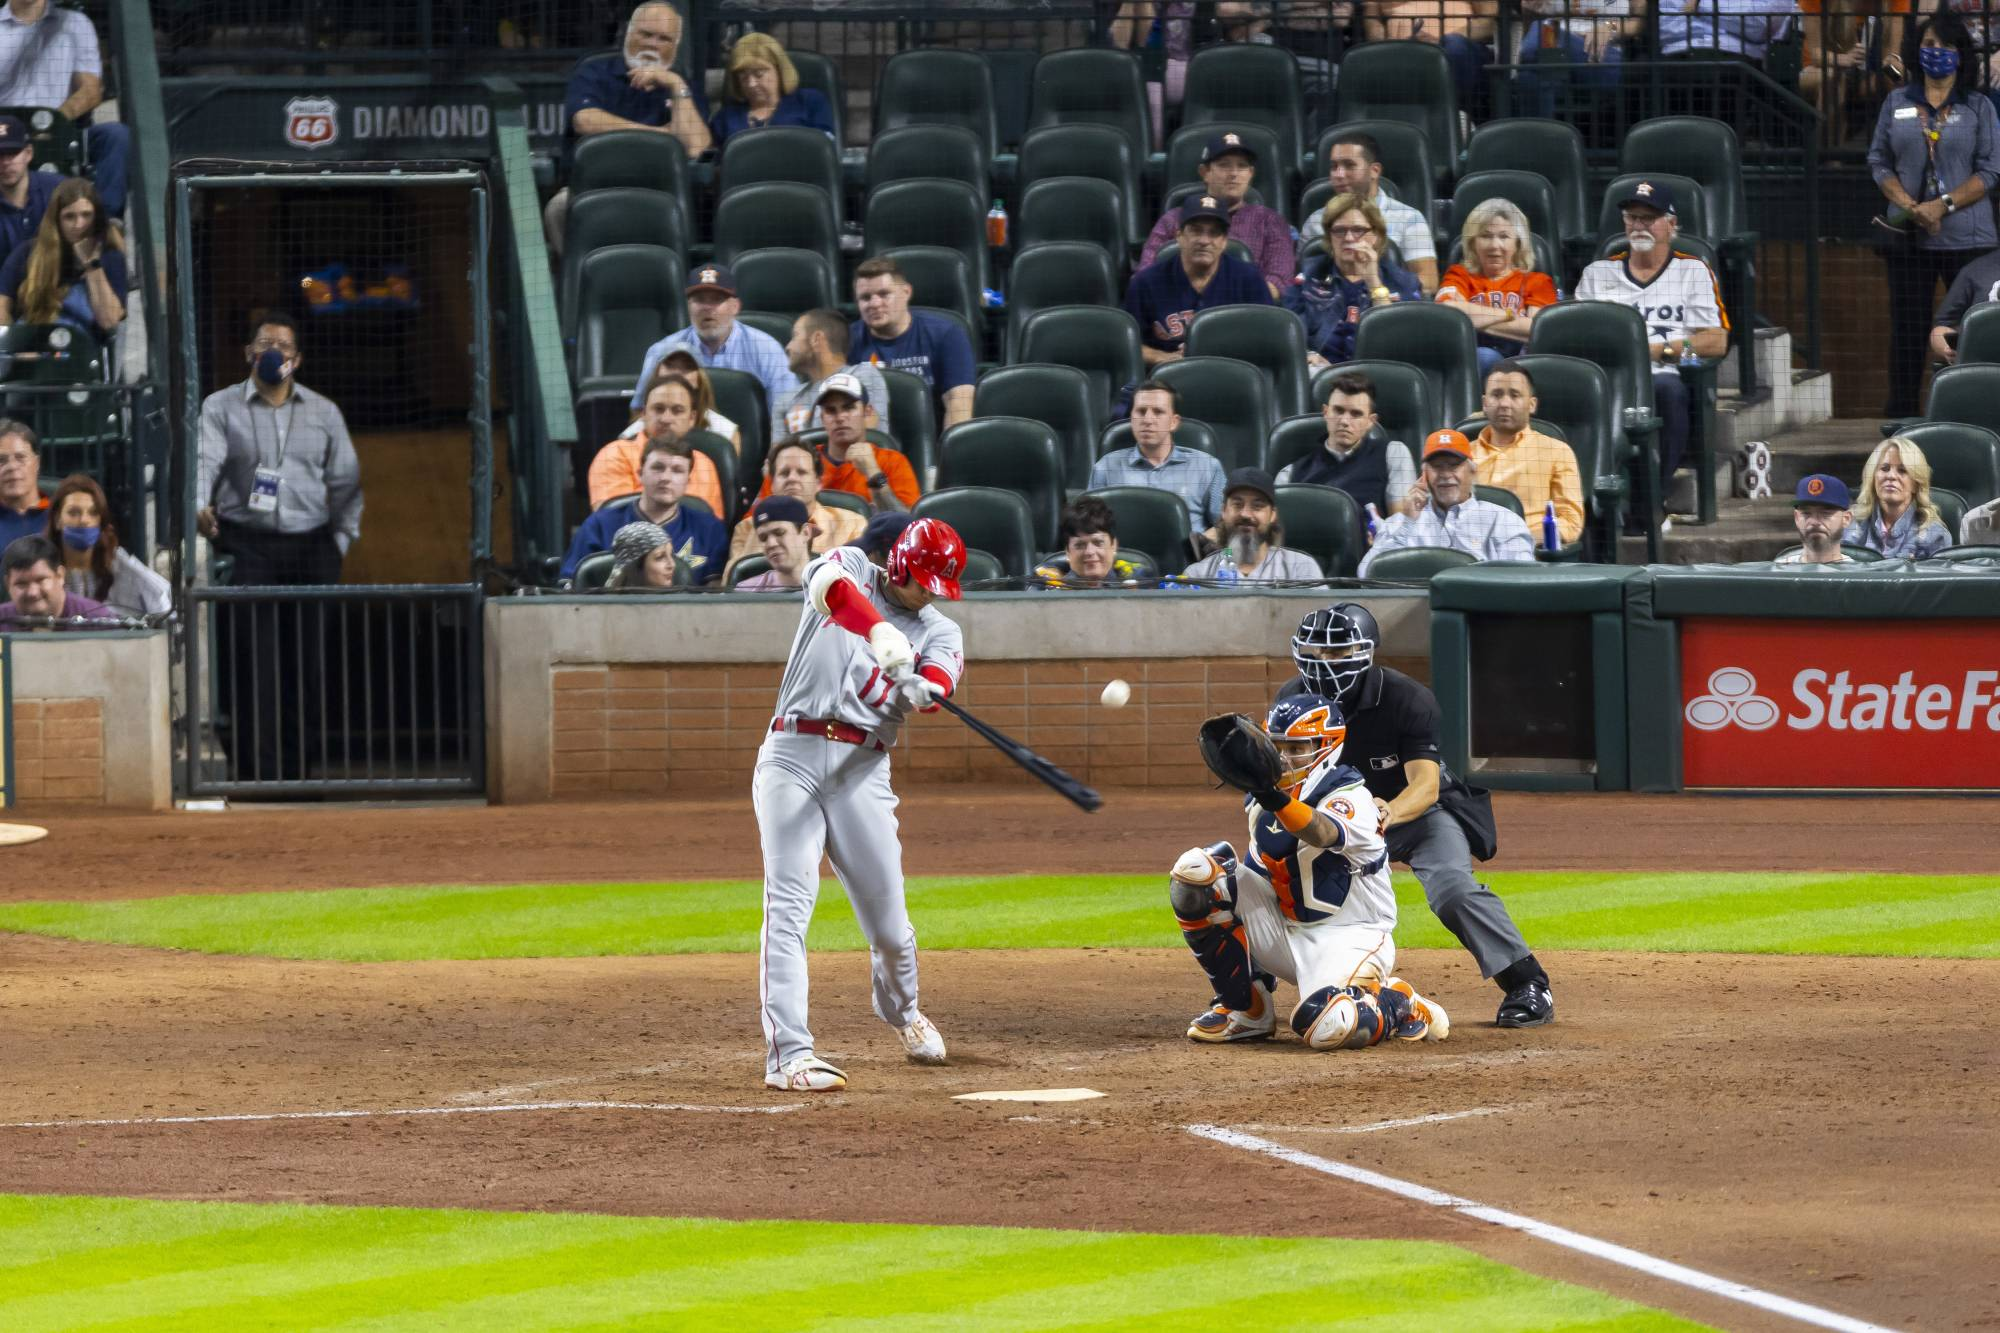 The Los Angeles Angels Shohei Ohtani fouls off a pitch in a game against the Houston Astros in Houston on Tuesday. Ohtani, dominating as a pitcher and a hitter, is a two-way player with Ruthian possibilities.   ANNIE MULLIGAN/THE NEW YORK TIMES